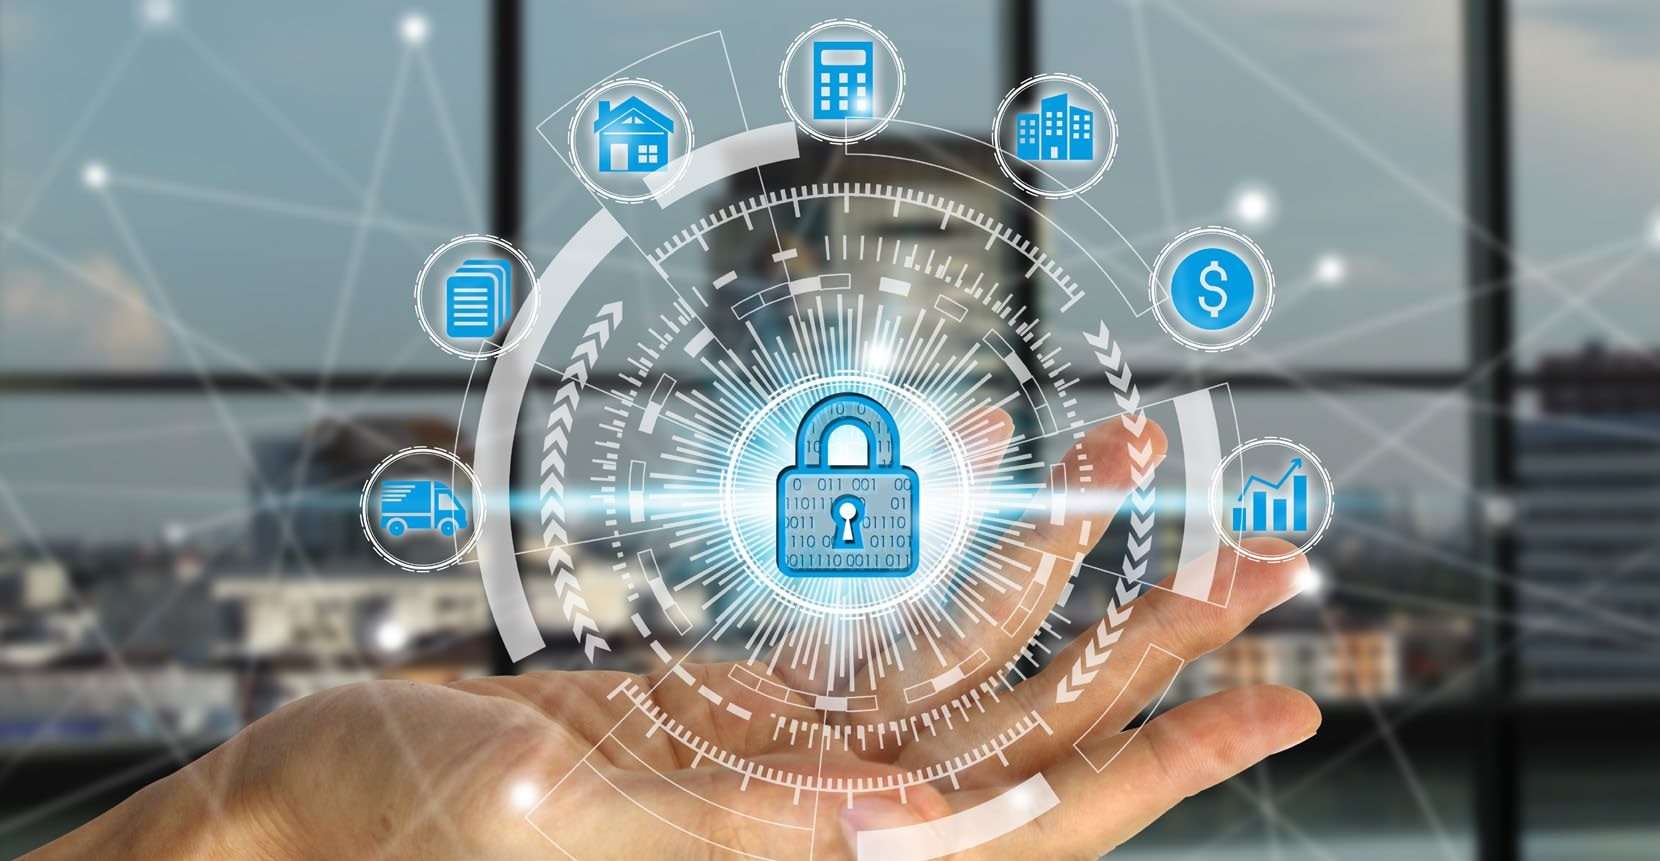 Foresense Technologies: Addressing Data and Privacy Concerns